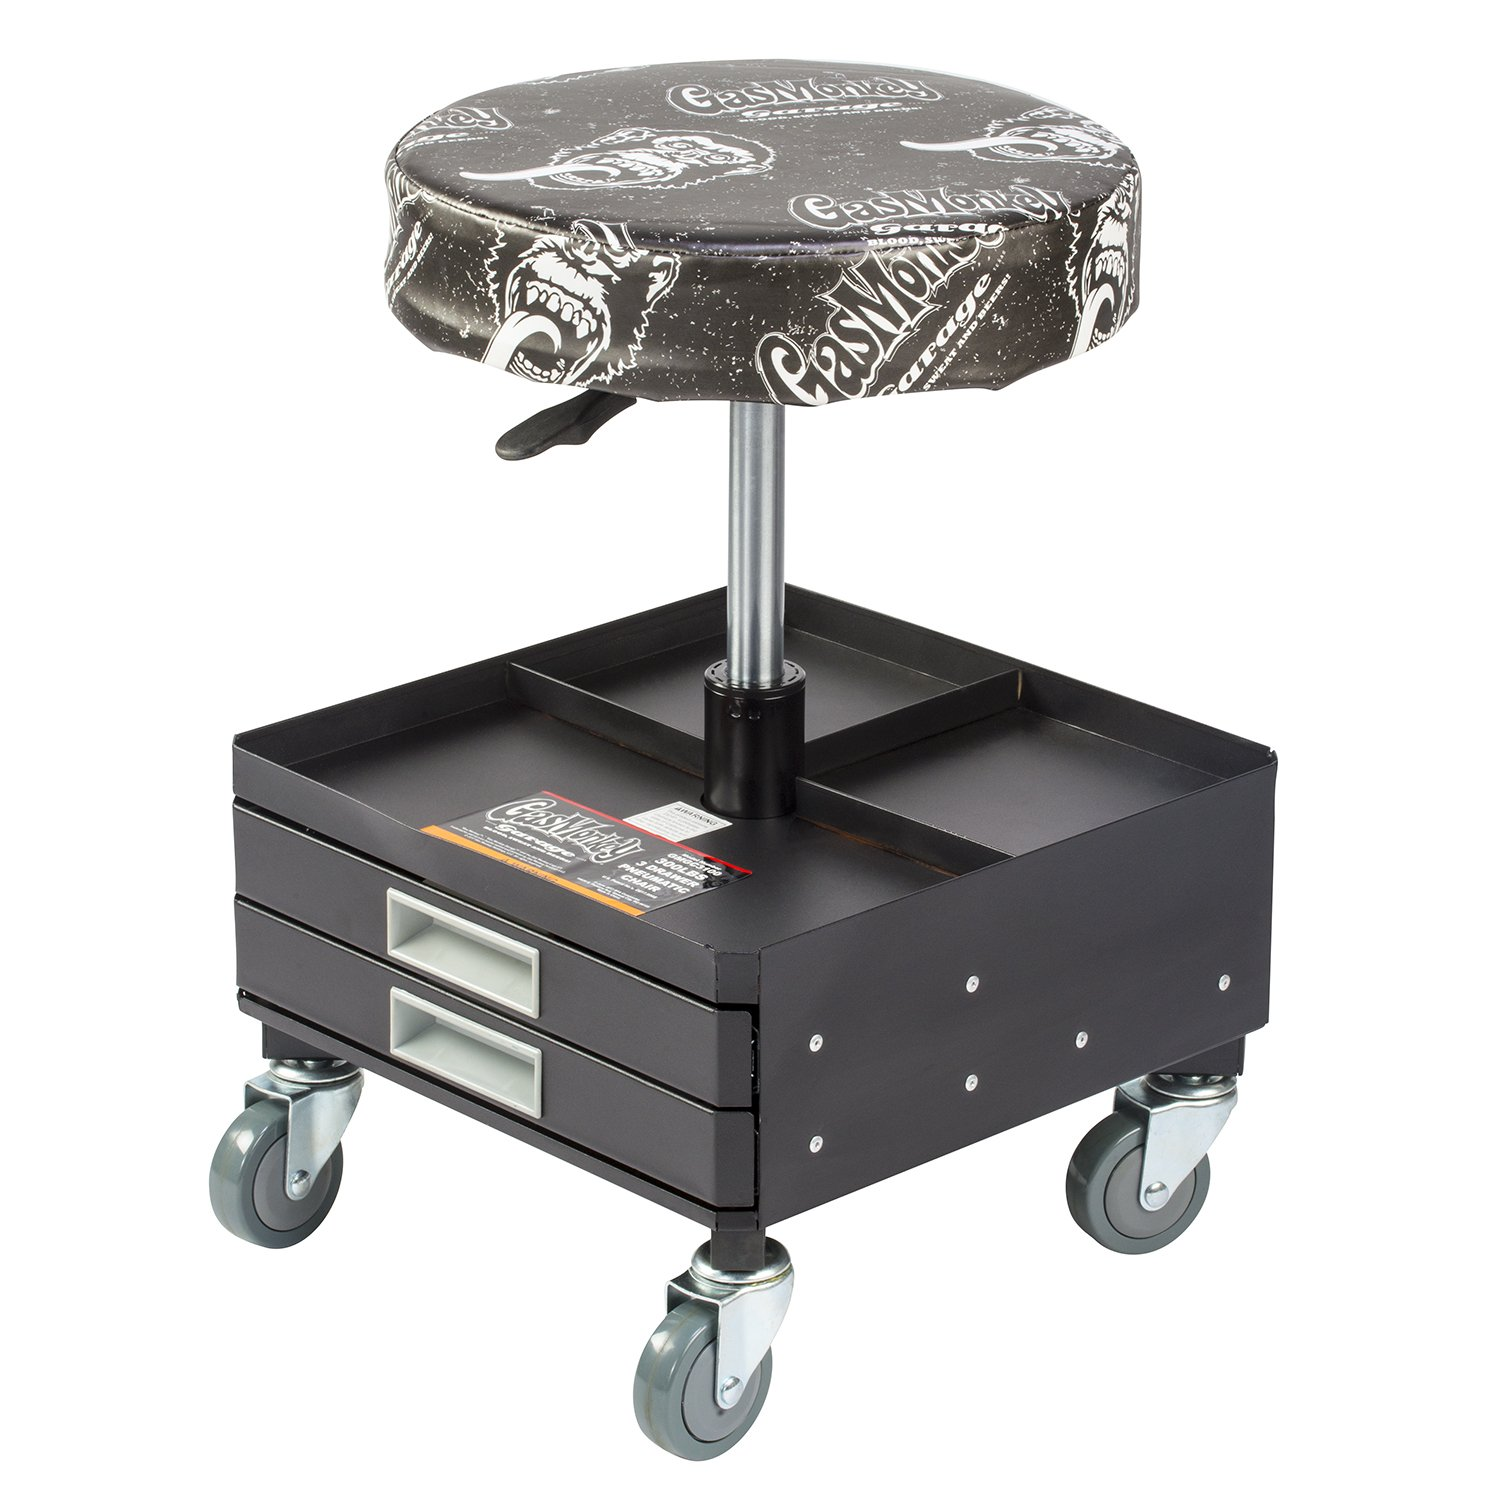 Gas Monkey Pneumatic Garage Chair With Tool Tray   5 Rolling Casters With  300 Lbs Capacity GMGC3001